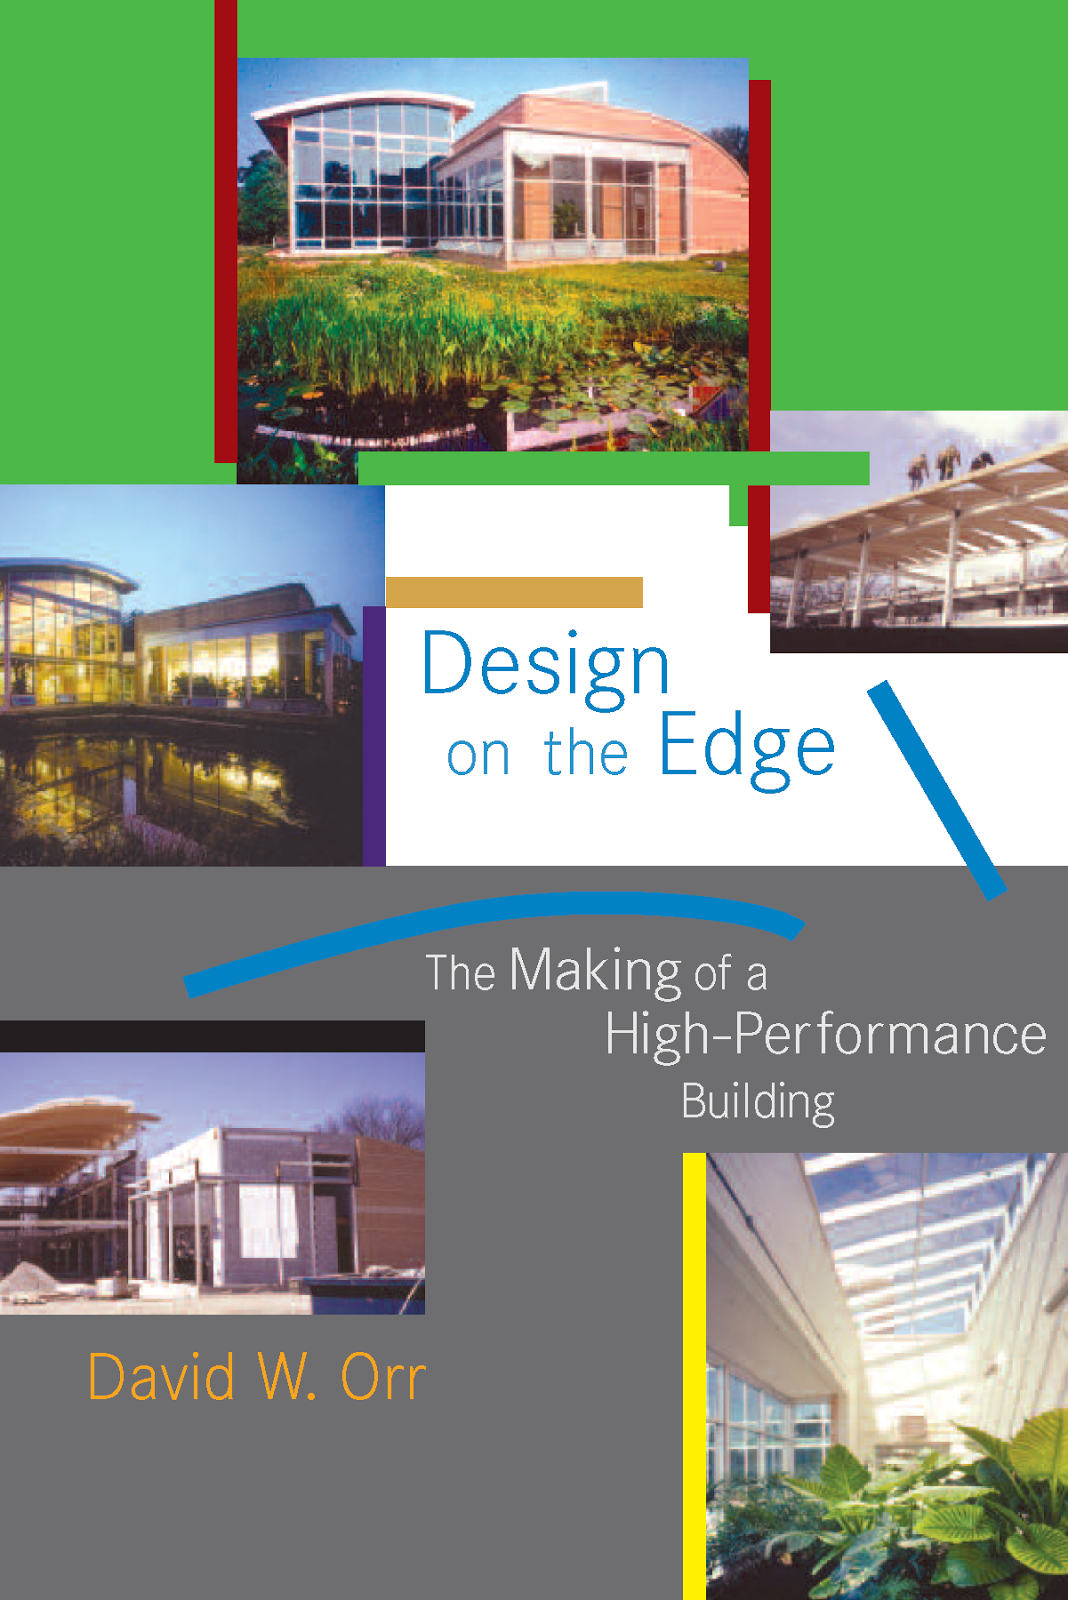 Book: Design on the Edge The Making of a High-Performance Building by David W. Orr